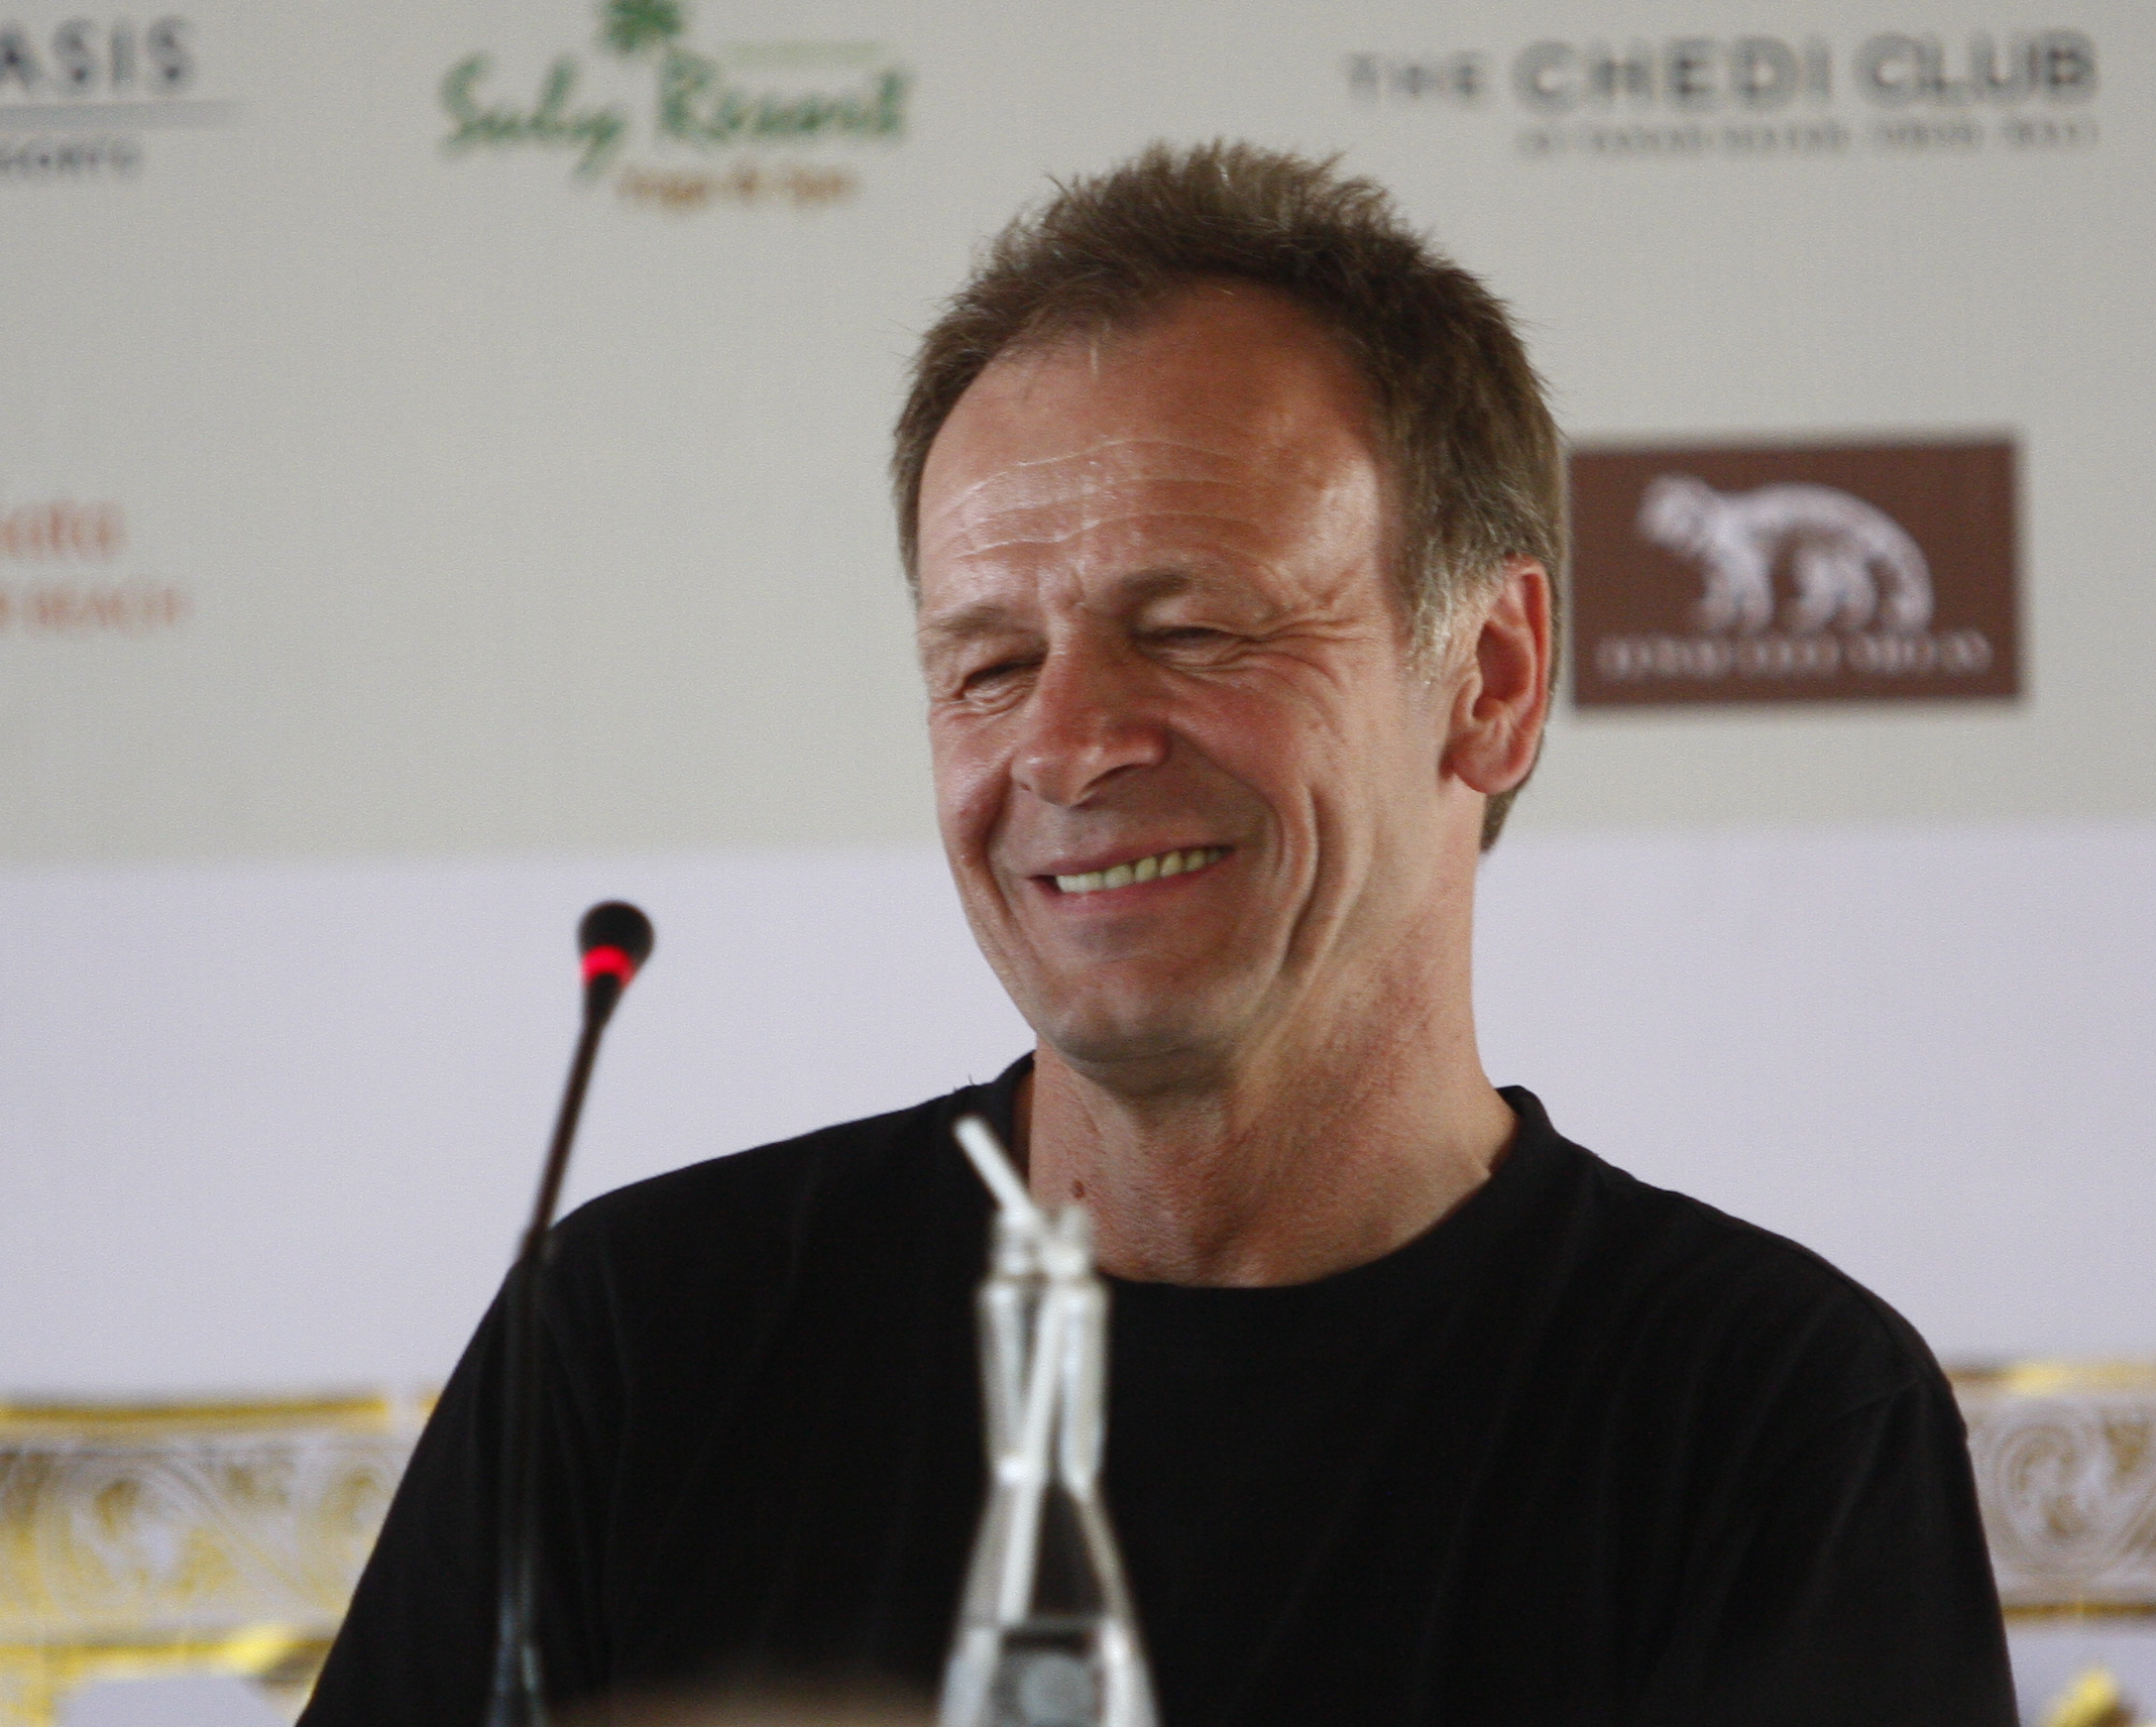 Josef Haslinger on Ubud Writers & Readers Festival 2012